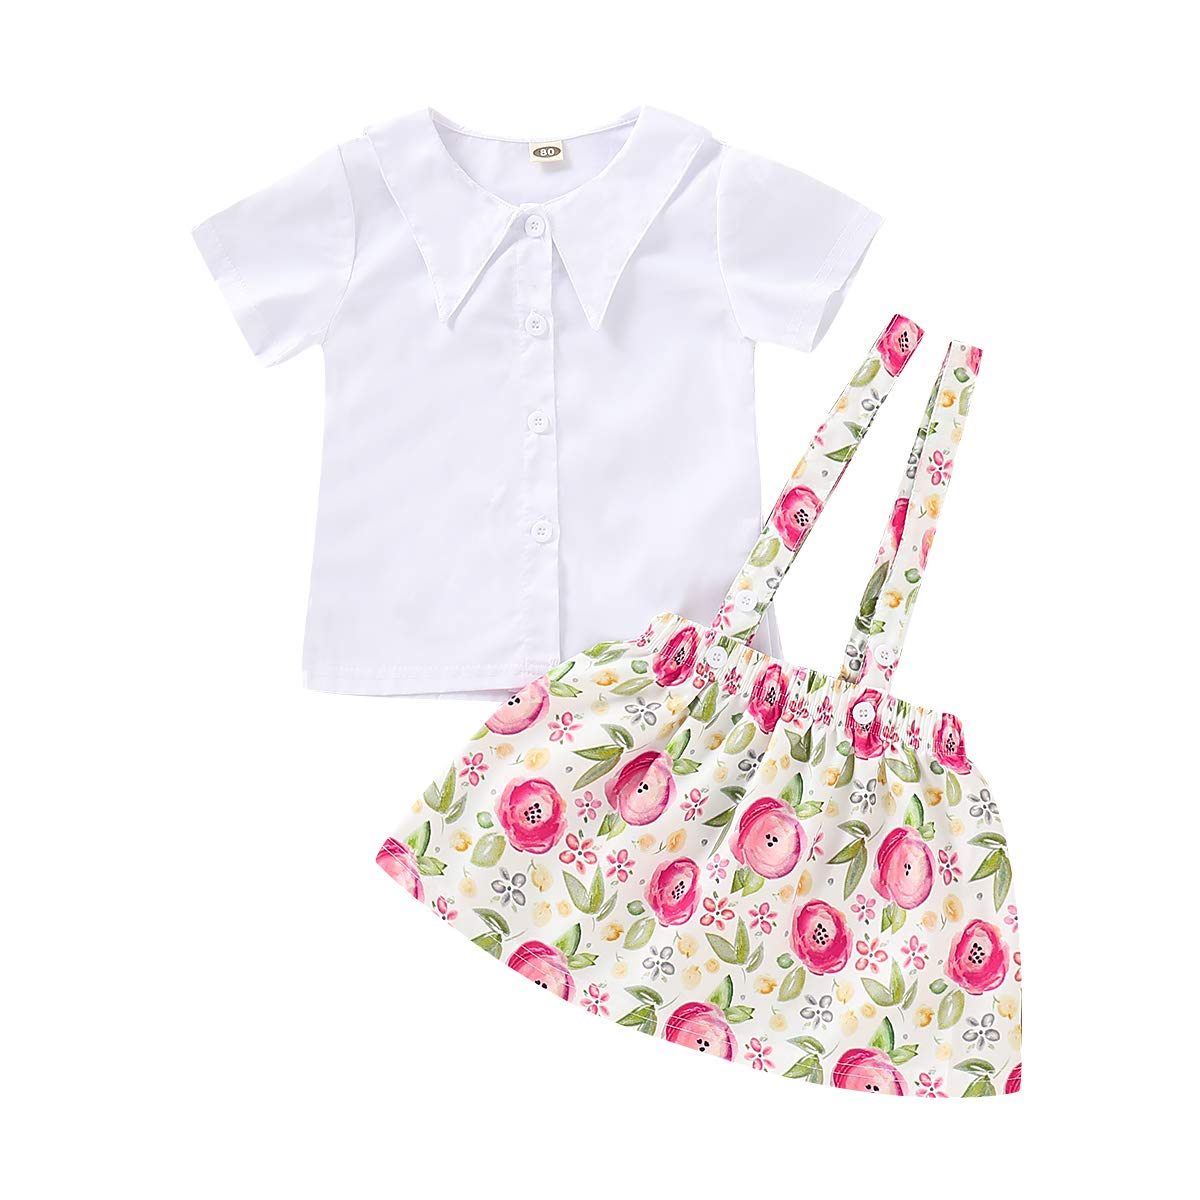 Toddler Kids Baby Girls White Top Short Sleeve T-Shirt Floral Skirt 2PCS Overalls Strap Dress Clothes Set